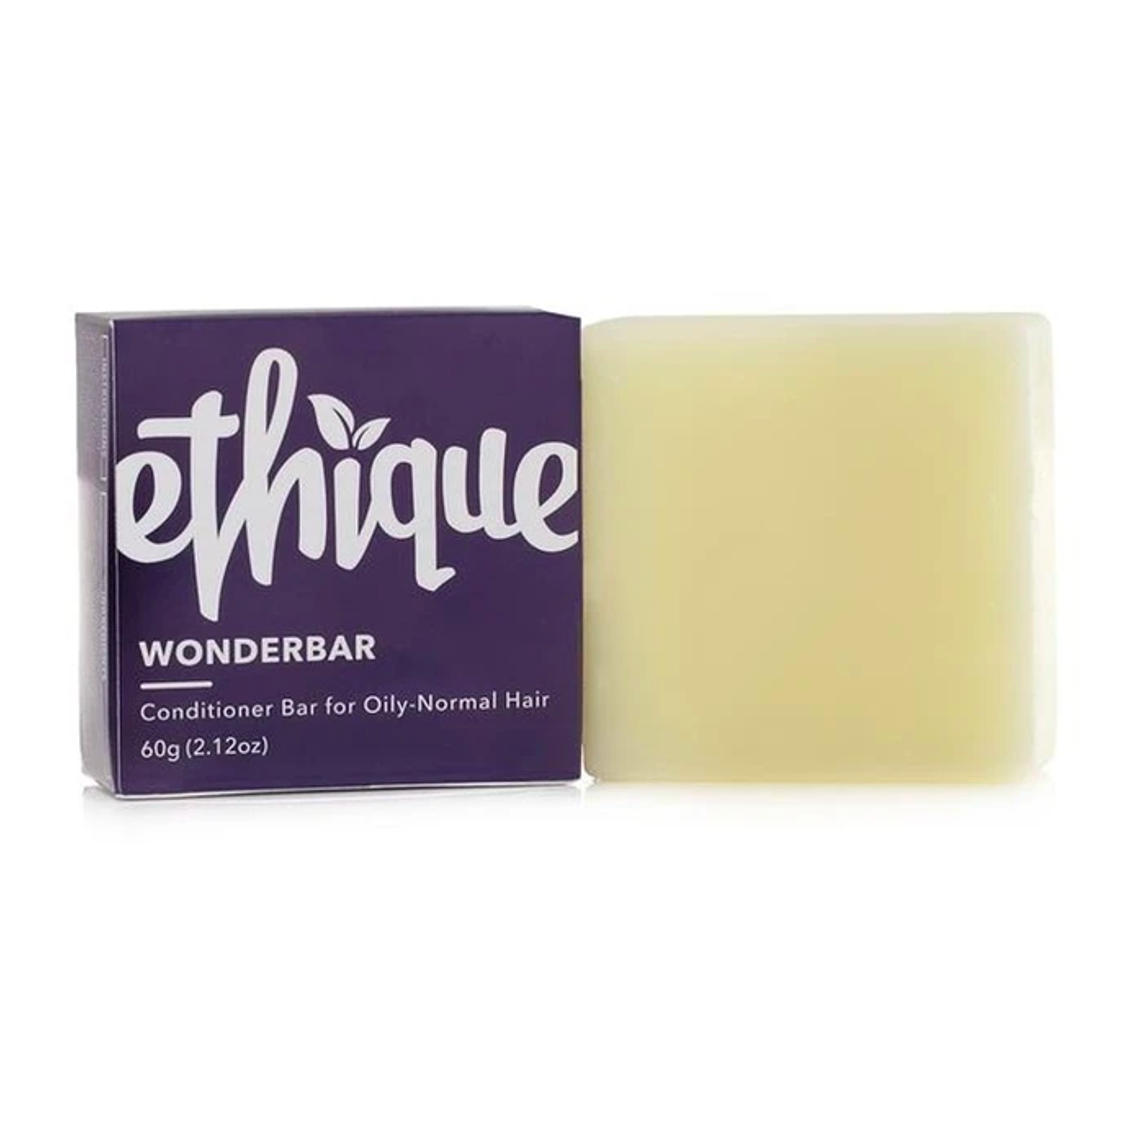 Eco-Friendly Conditioner Bar for Oily-Normal Hair, Wonderbar, 2.12 oz (60g)